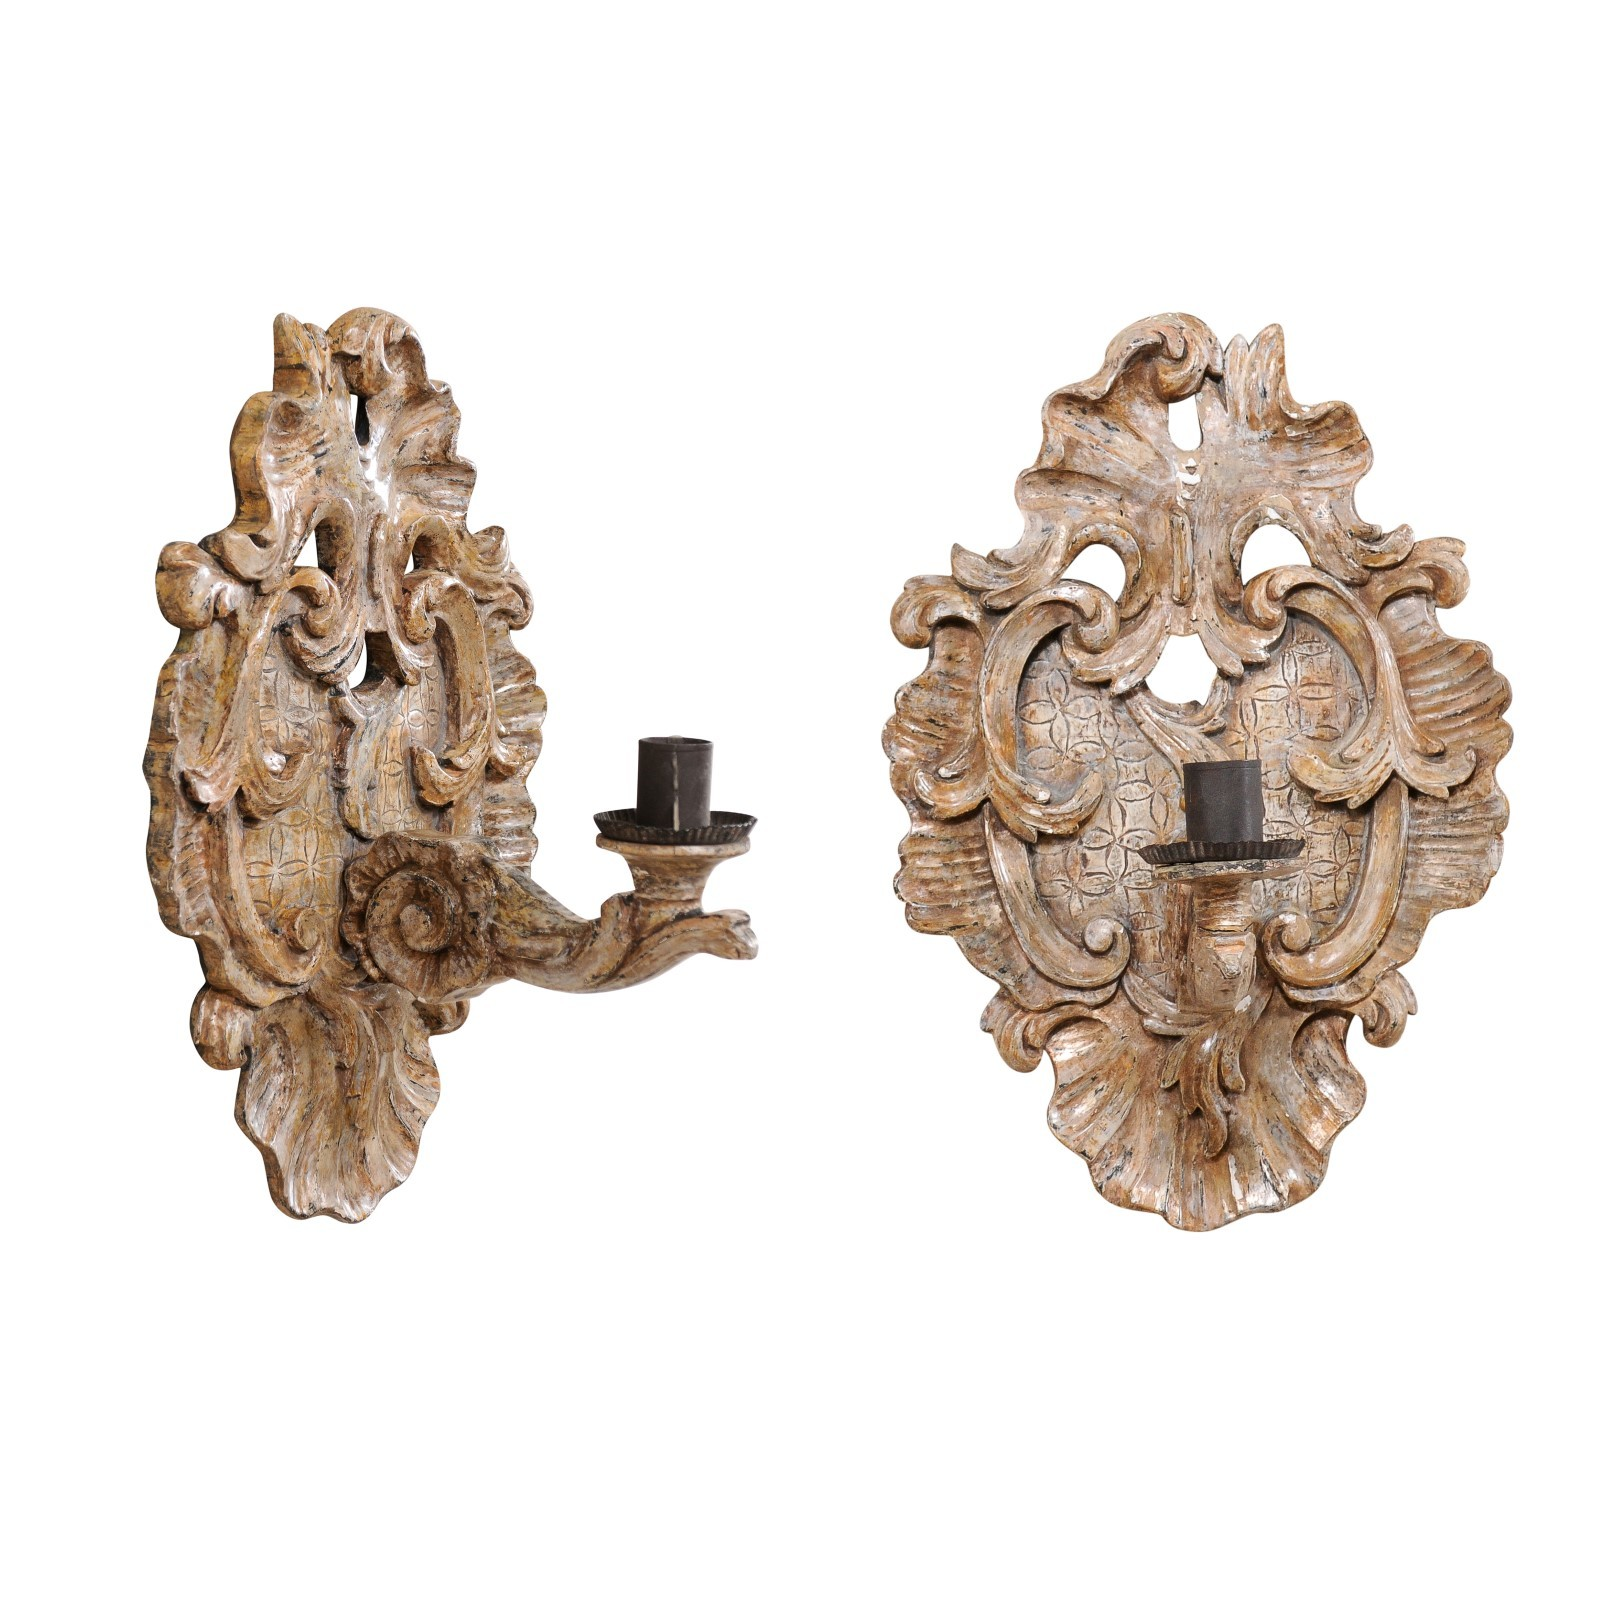 Antique Acanthus Leaf Candle Sconces, Italy